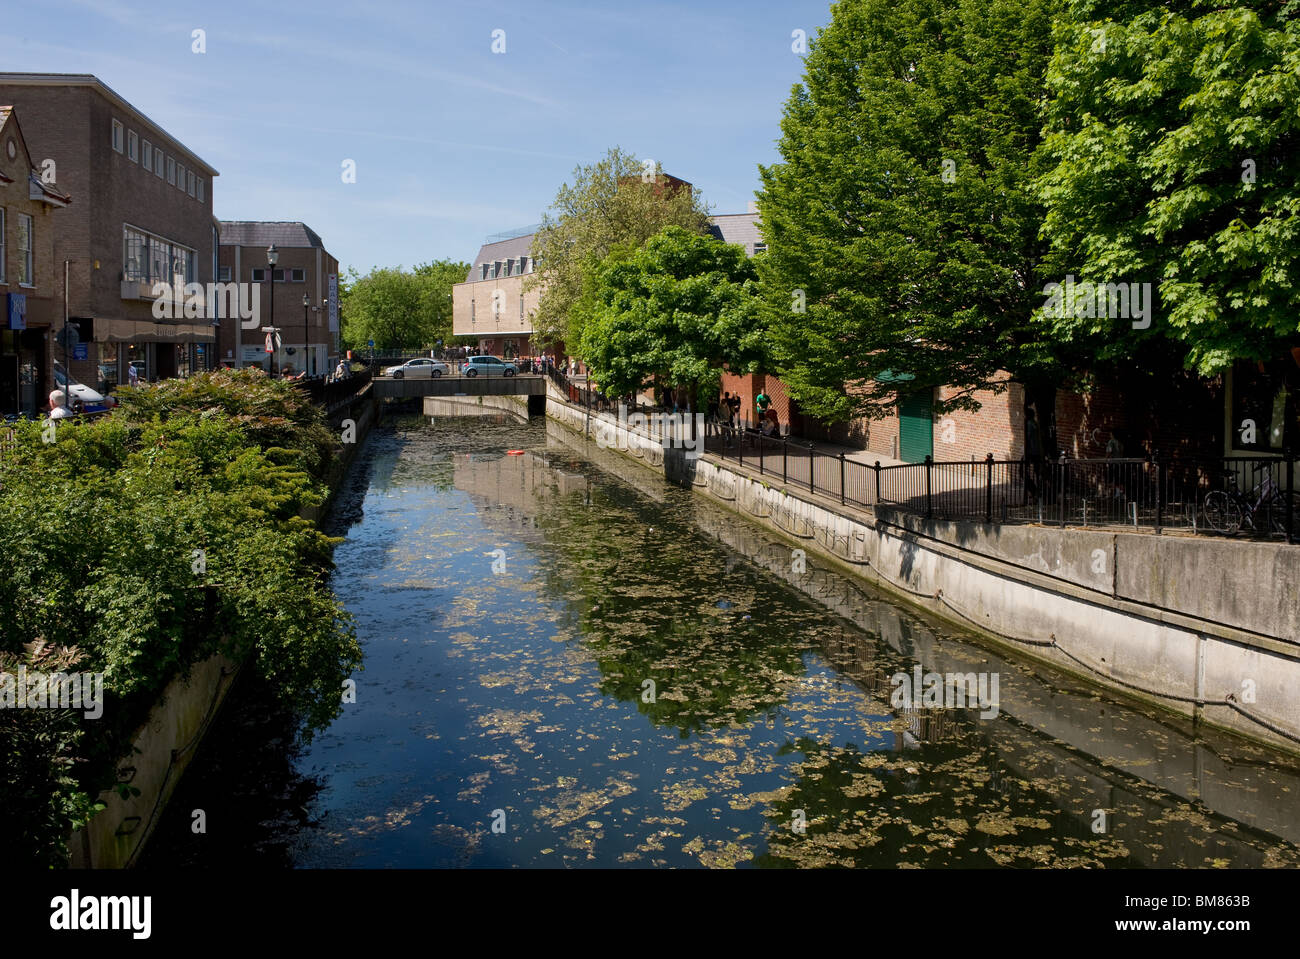 The River Chelmer running through Chelmsford in Essex.  Photo by Gordon Scammell Stock Photo